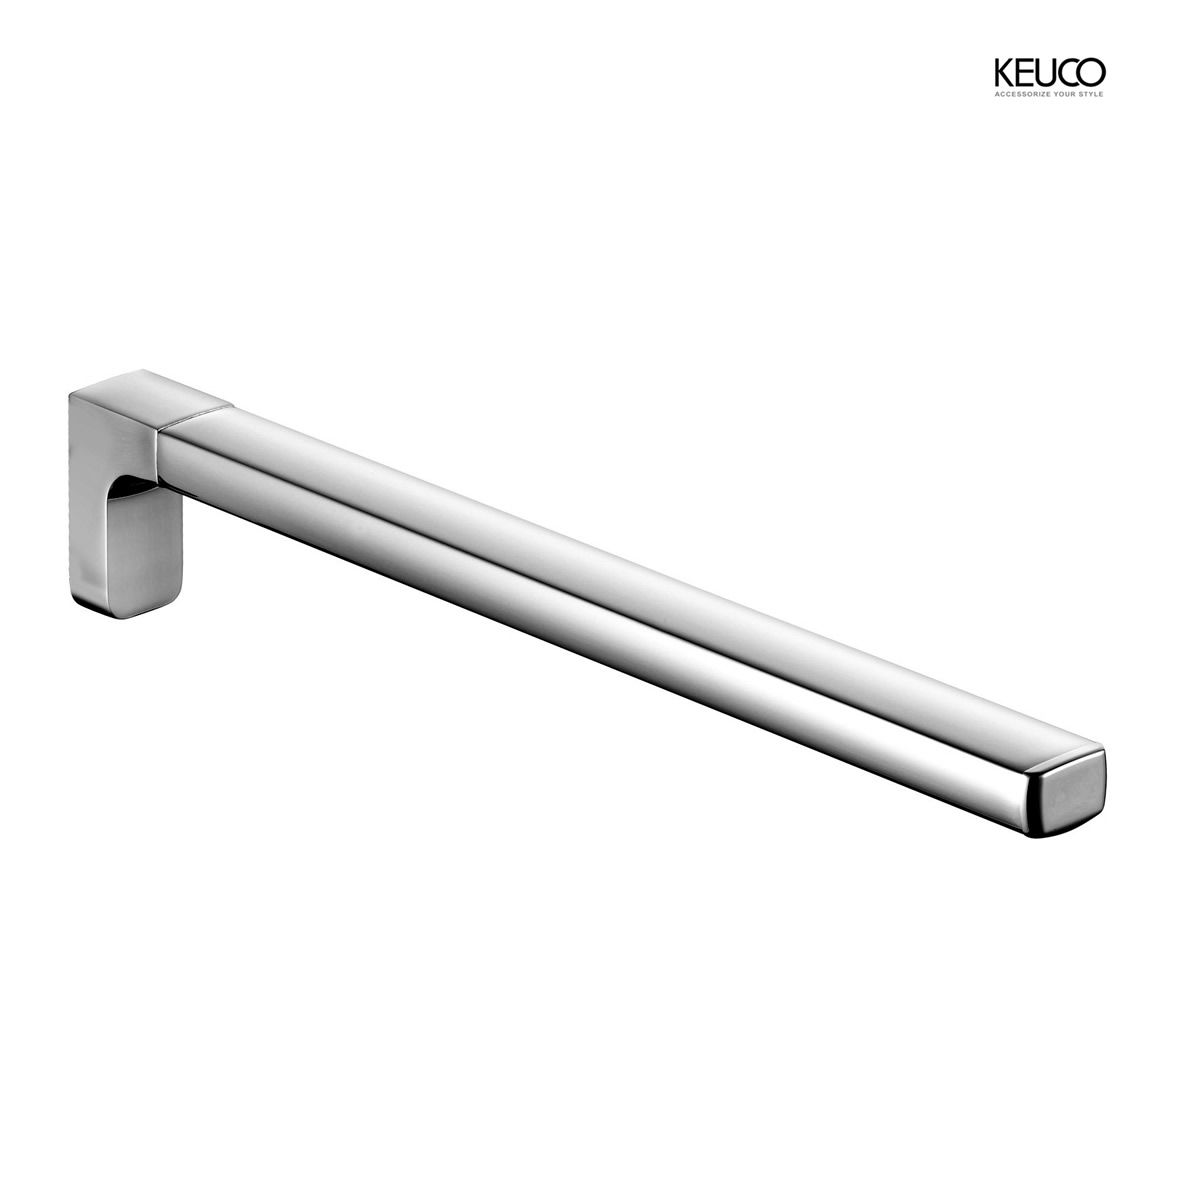 Keuco Moll Single Towel Holder Uk Bathrooms